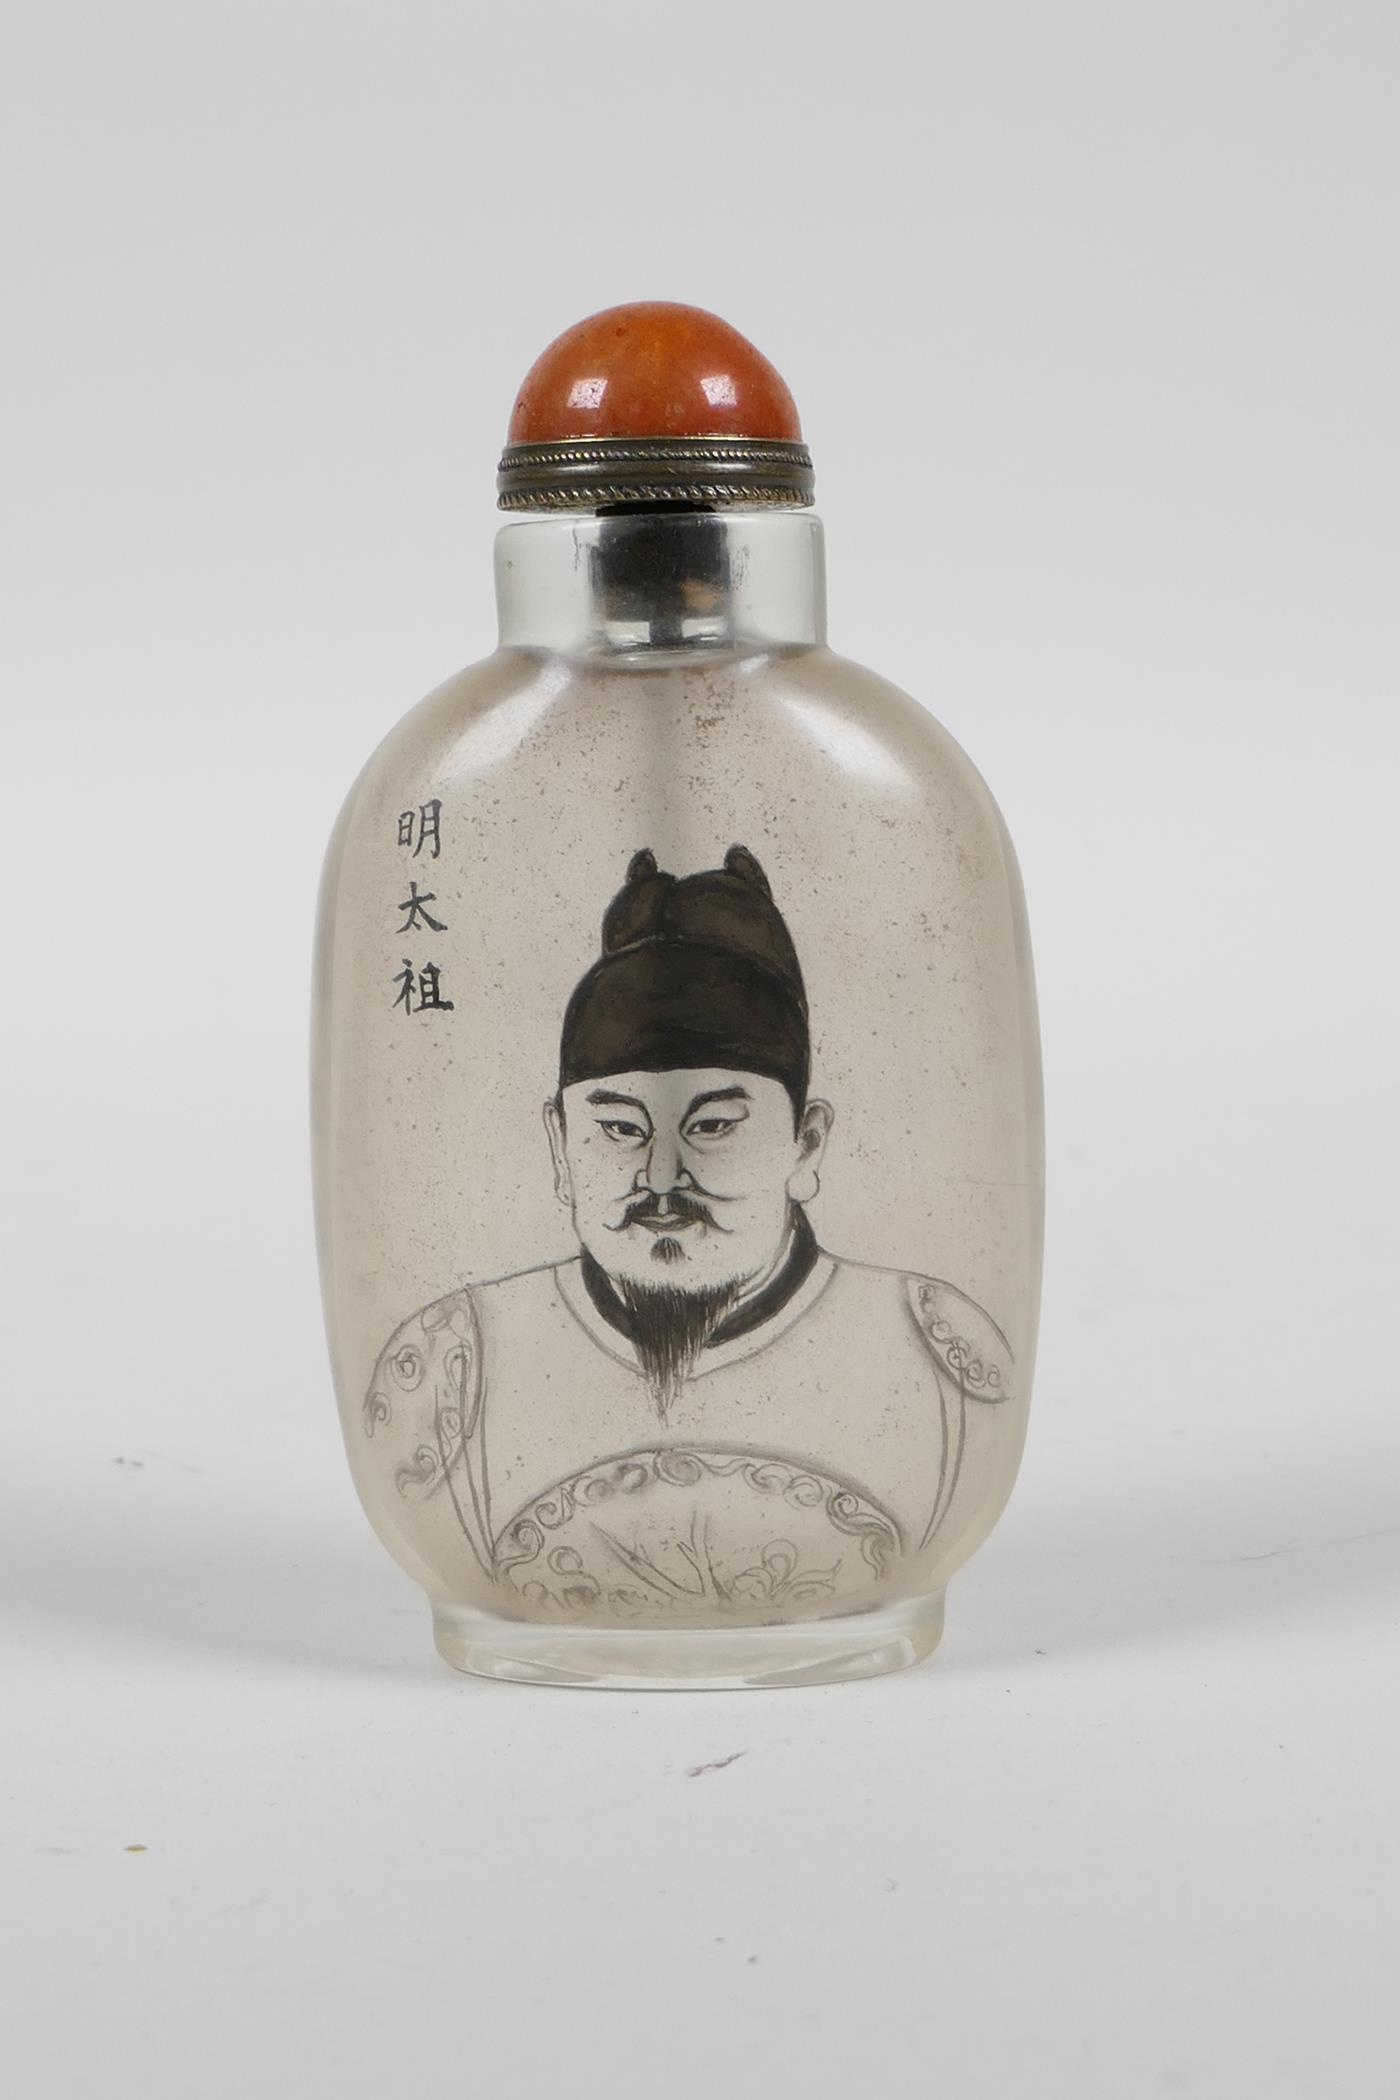 A Chinese reverse decorated glass snuff bottle depicting a Chinese gentleman, with a character